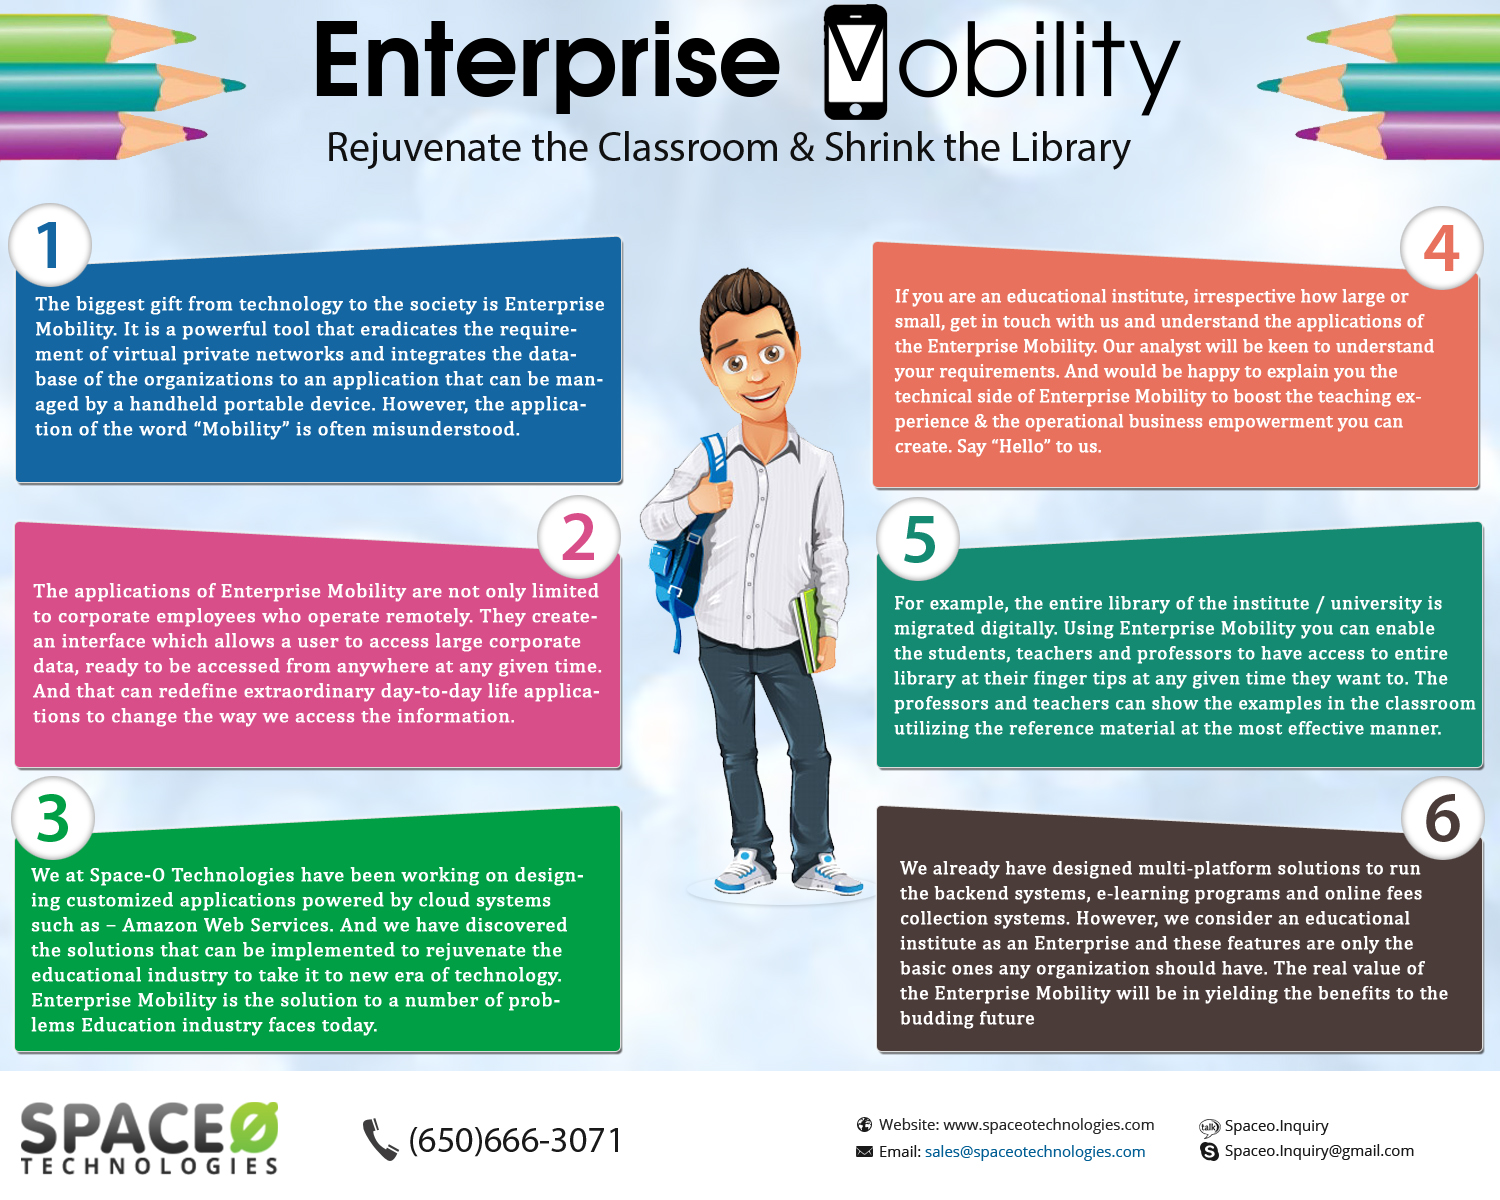 Enterprise Mobility for Educational Institutes and Redefining the Learning Experience